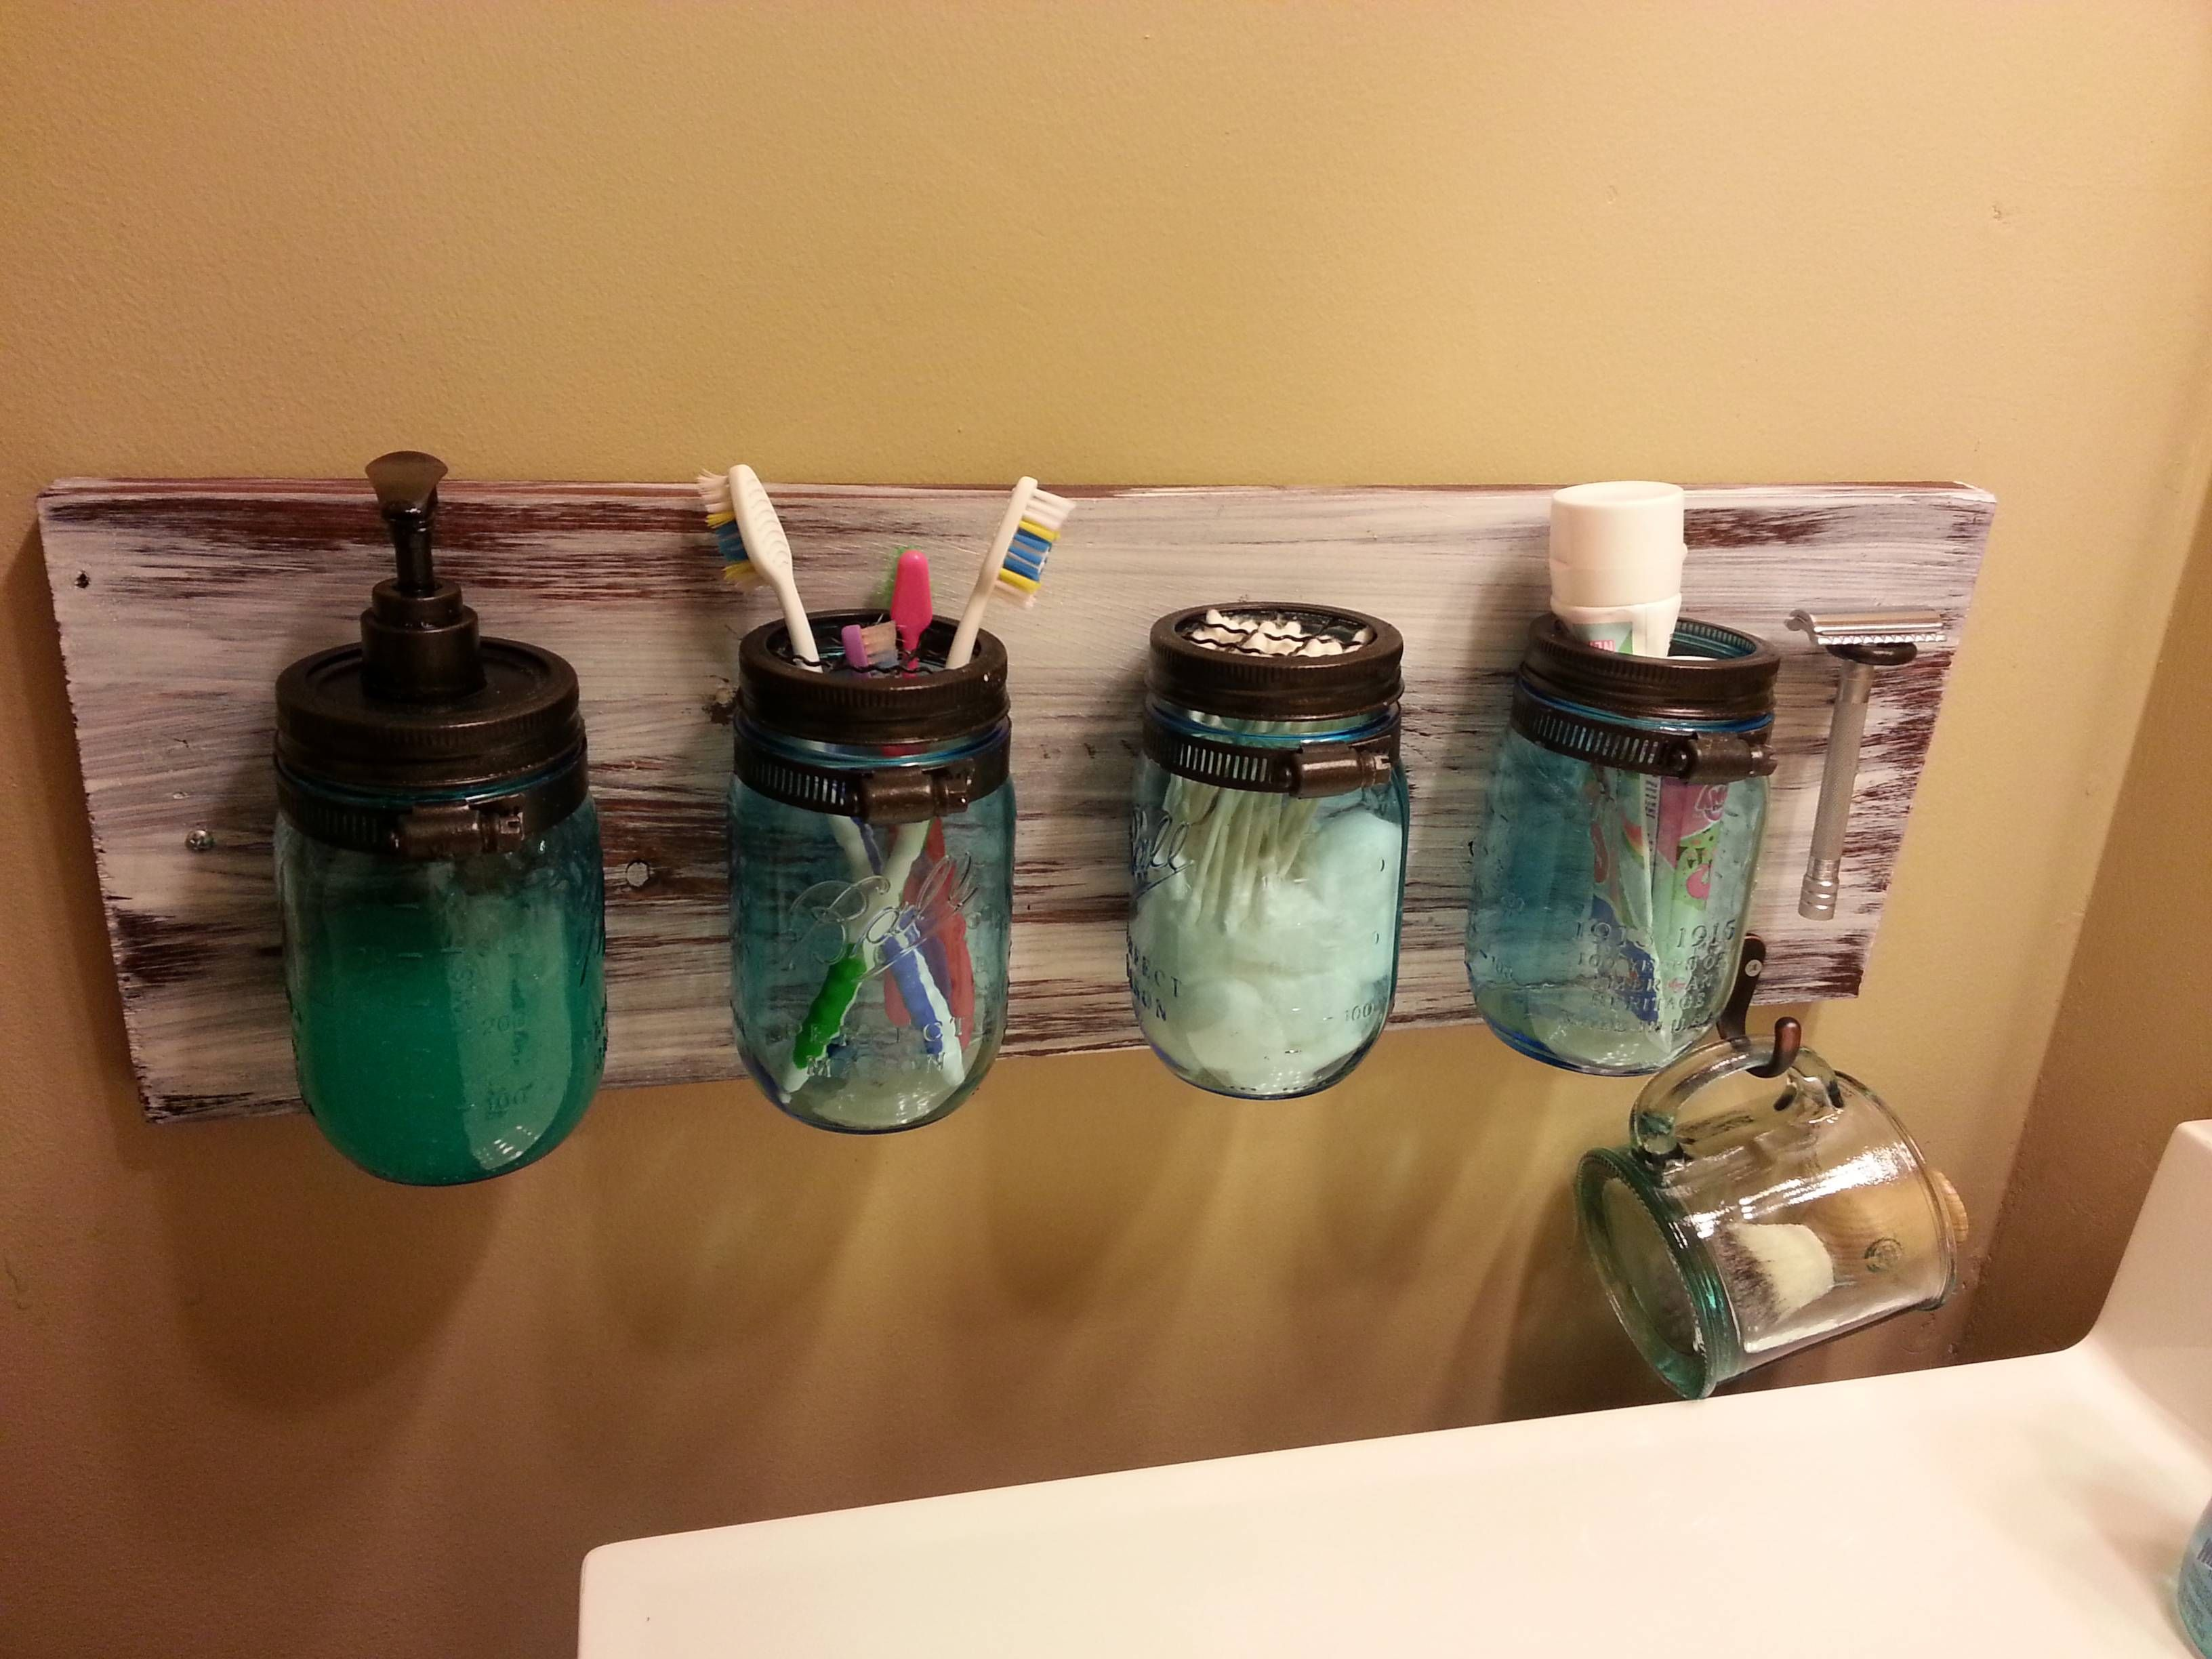 Diy bathroom storage ideas - Diy Bathroom Storage